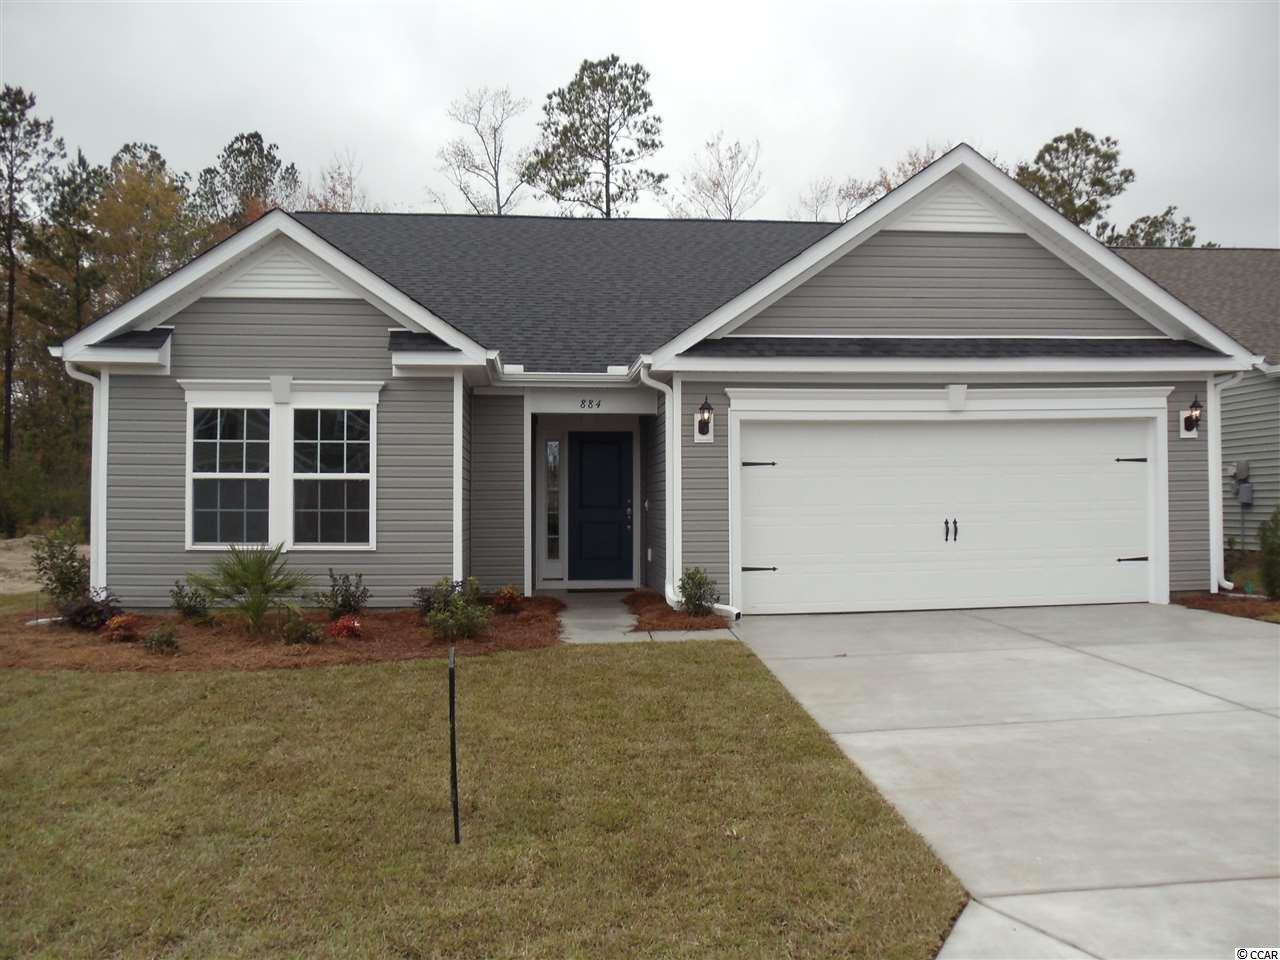 Move-In Ready Dogwood Floorplan. Features include Covered Porch, Irrigation System, Nature Preserve Home Site & Stainless Appliances w/ Natural Gas Range. Community is just 10 Minutes to beach, close to Hwy. 31 but tucked away from all the traffic and hustle of NMB. Come out and tour my New Model and Pool/Clubhouse Amenity.